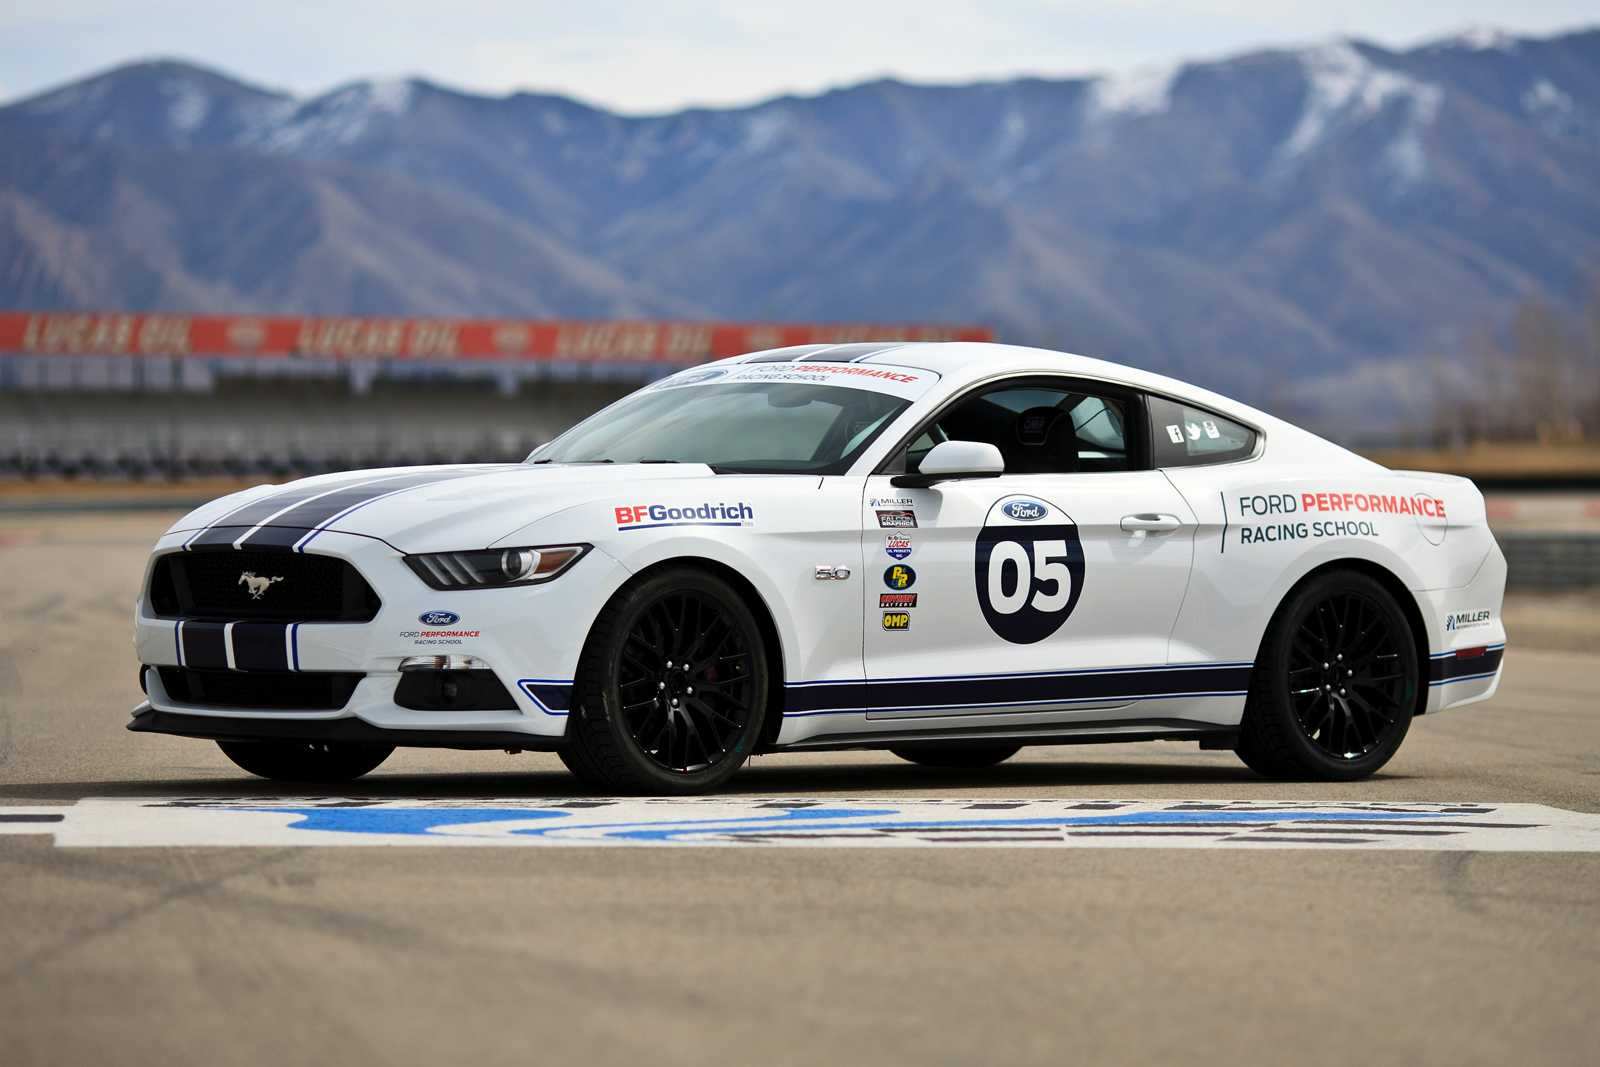 Ford Performance Racing School >> Ford Performance Racing School Does Deal With Tooele County